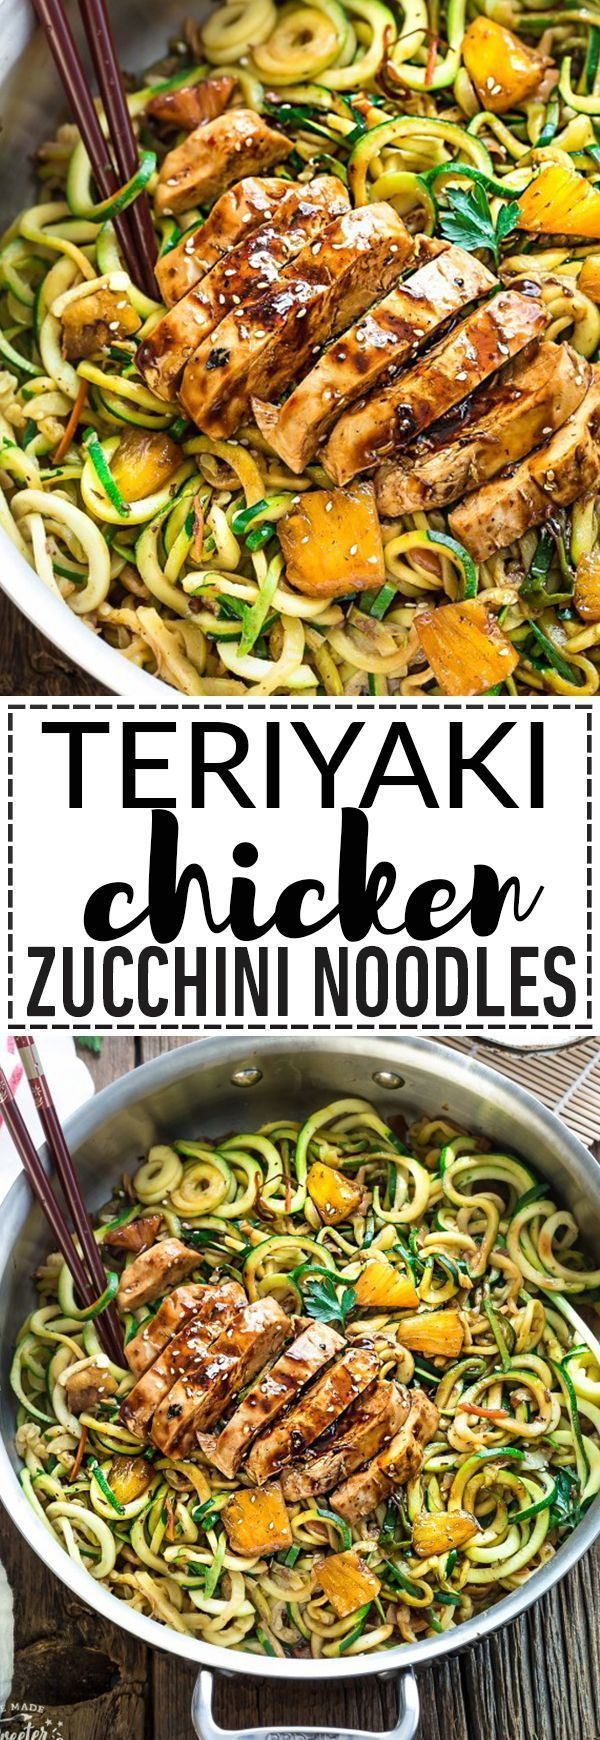 This recipe for One Pot Teriyaki Chicken Zoodles {Zucchini Noodles} makes the perfect easy gluten-free (with paleo option) lower carb weeknight meal! Best of all, it's so much better and healthier than takeout - only 30 minutes to make with just one pan t paleo dinner cabbage